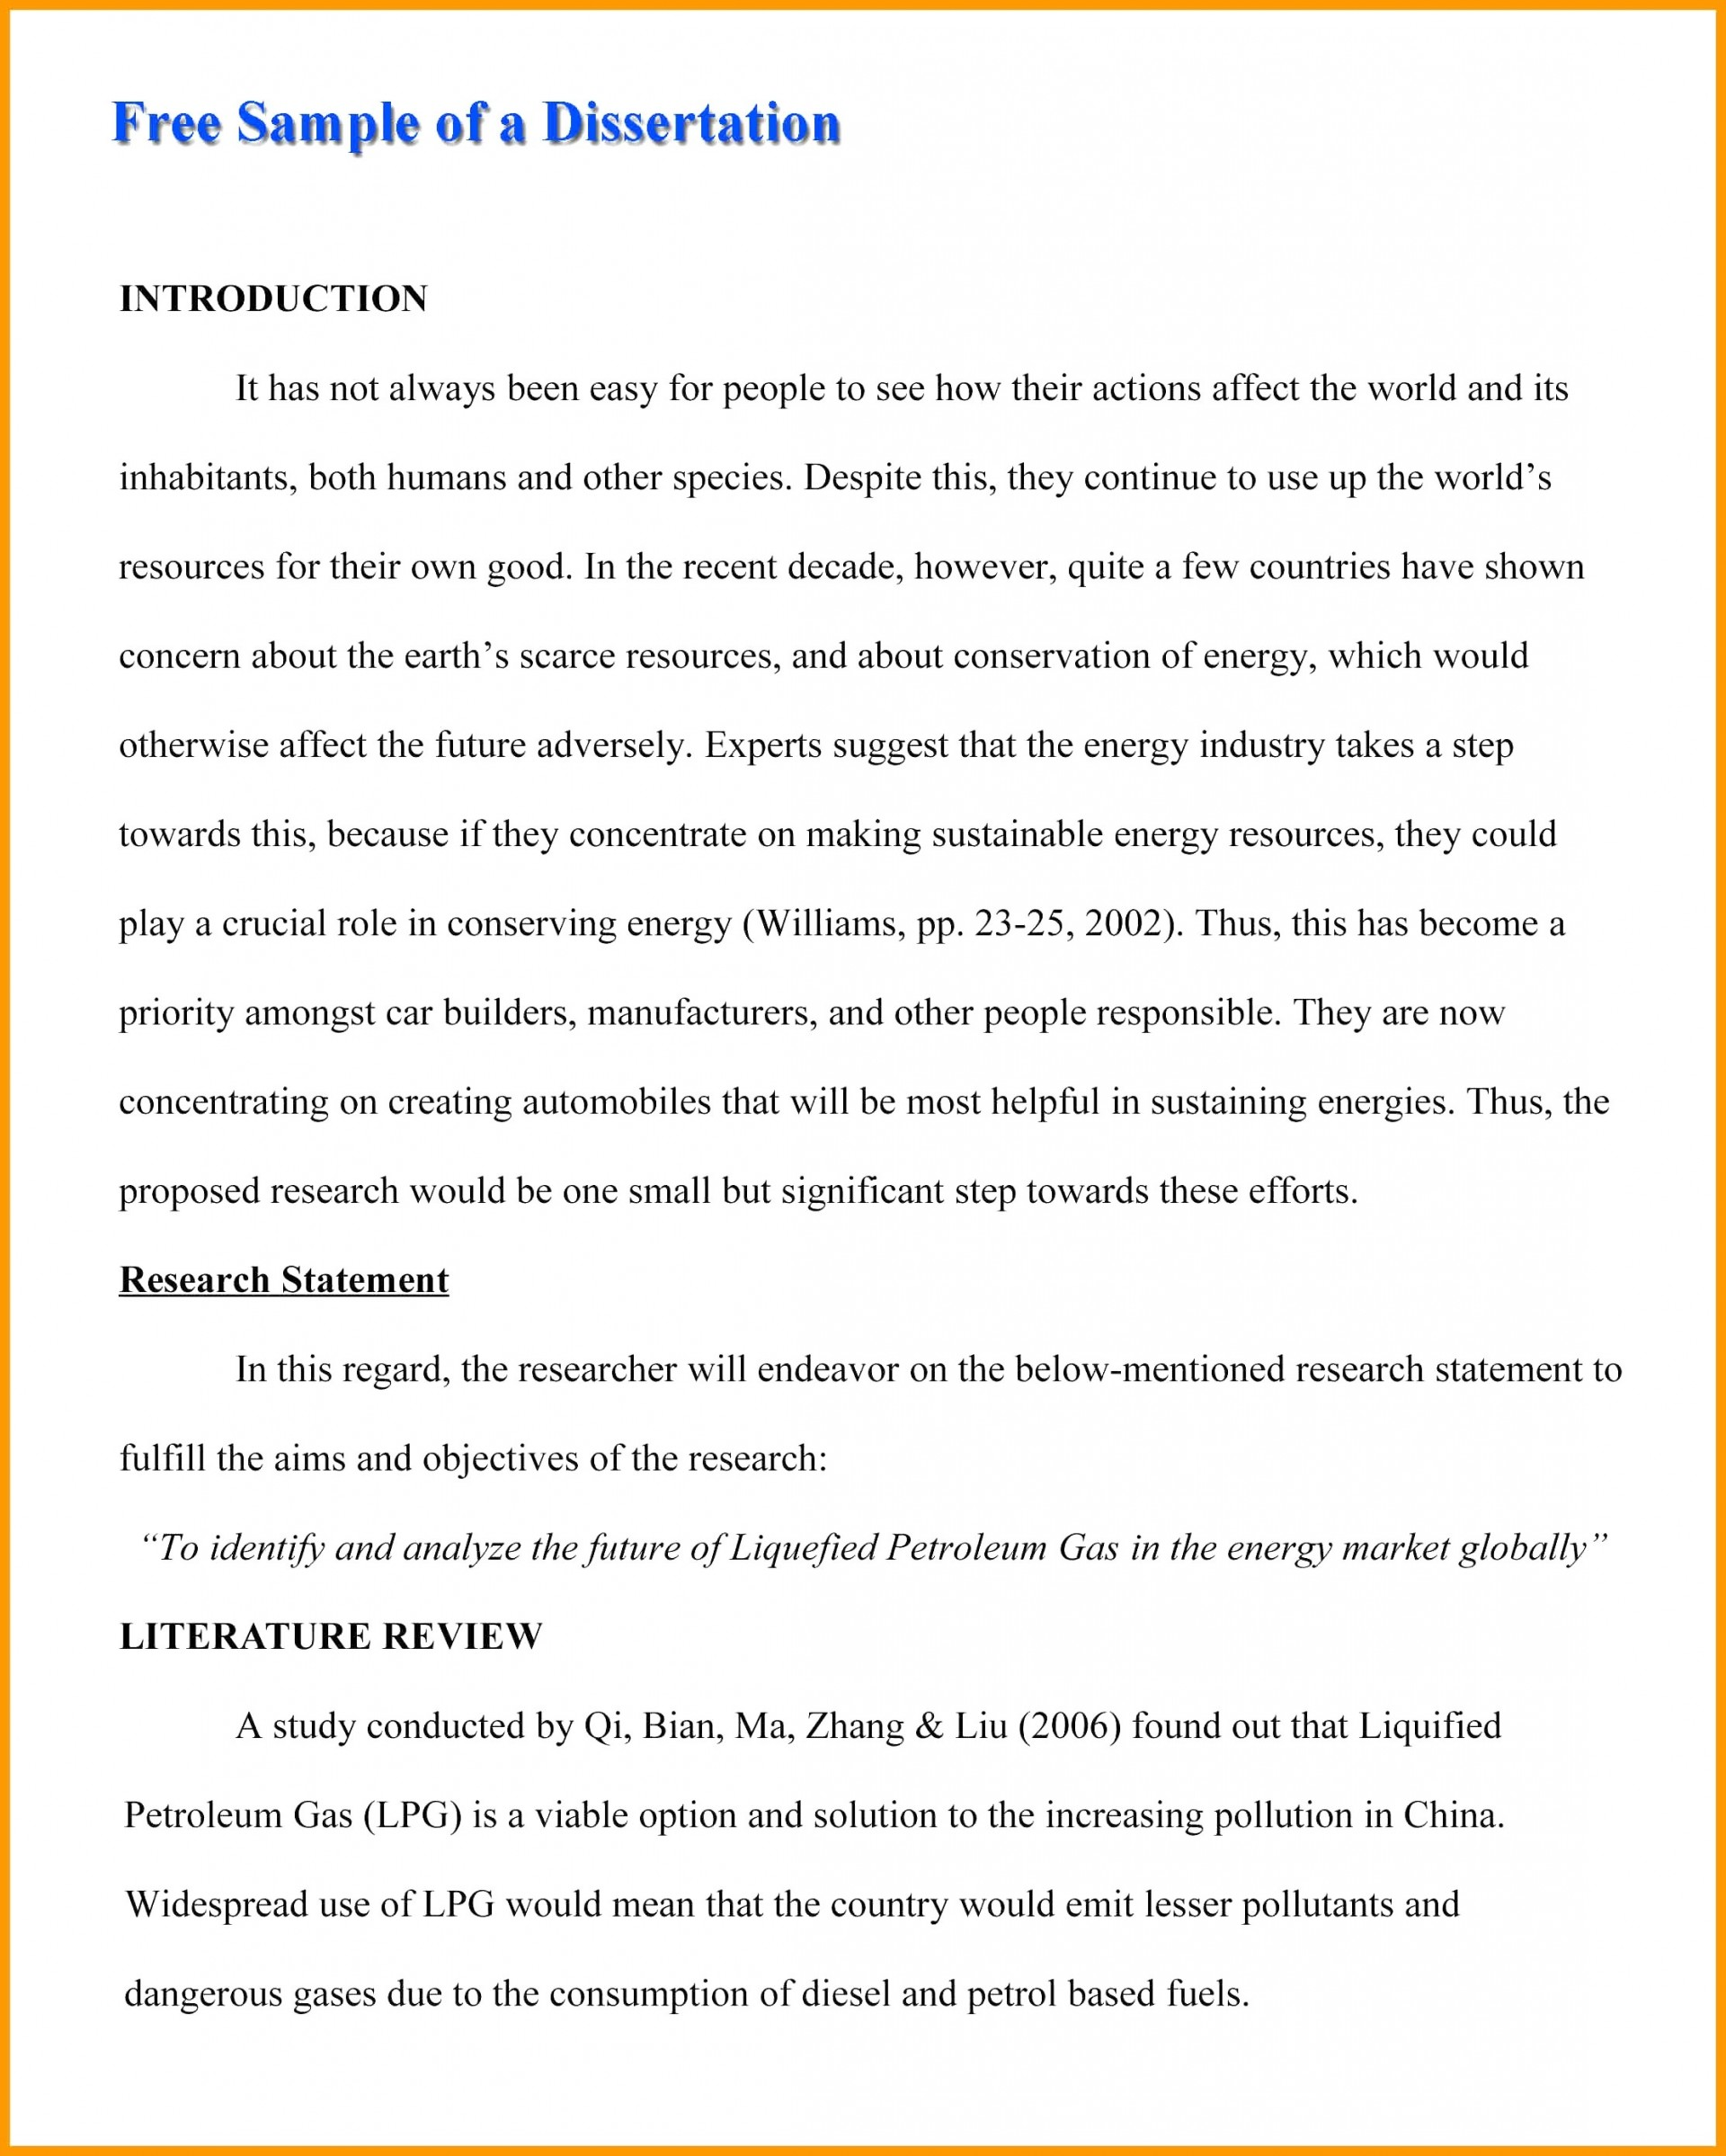 004 War On Drugs Research Paper Outline Filename Books Historical Pertaining To History Essay Impressive Rubric High School Template 1920